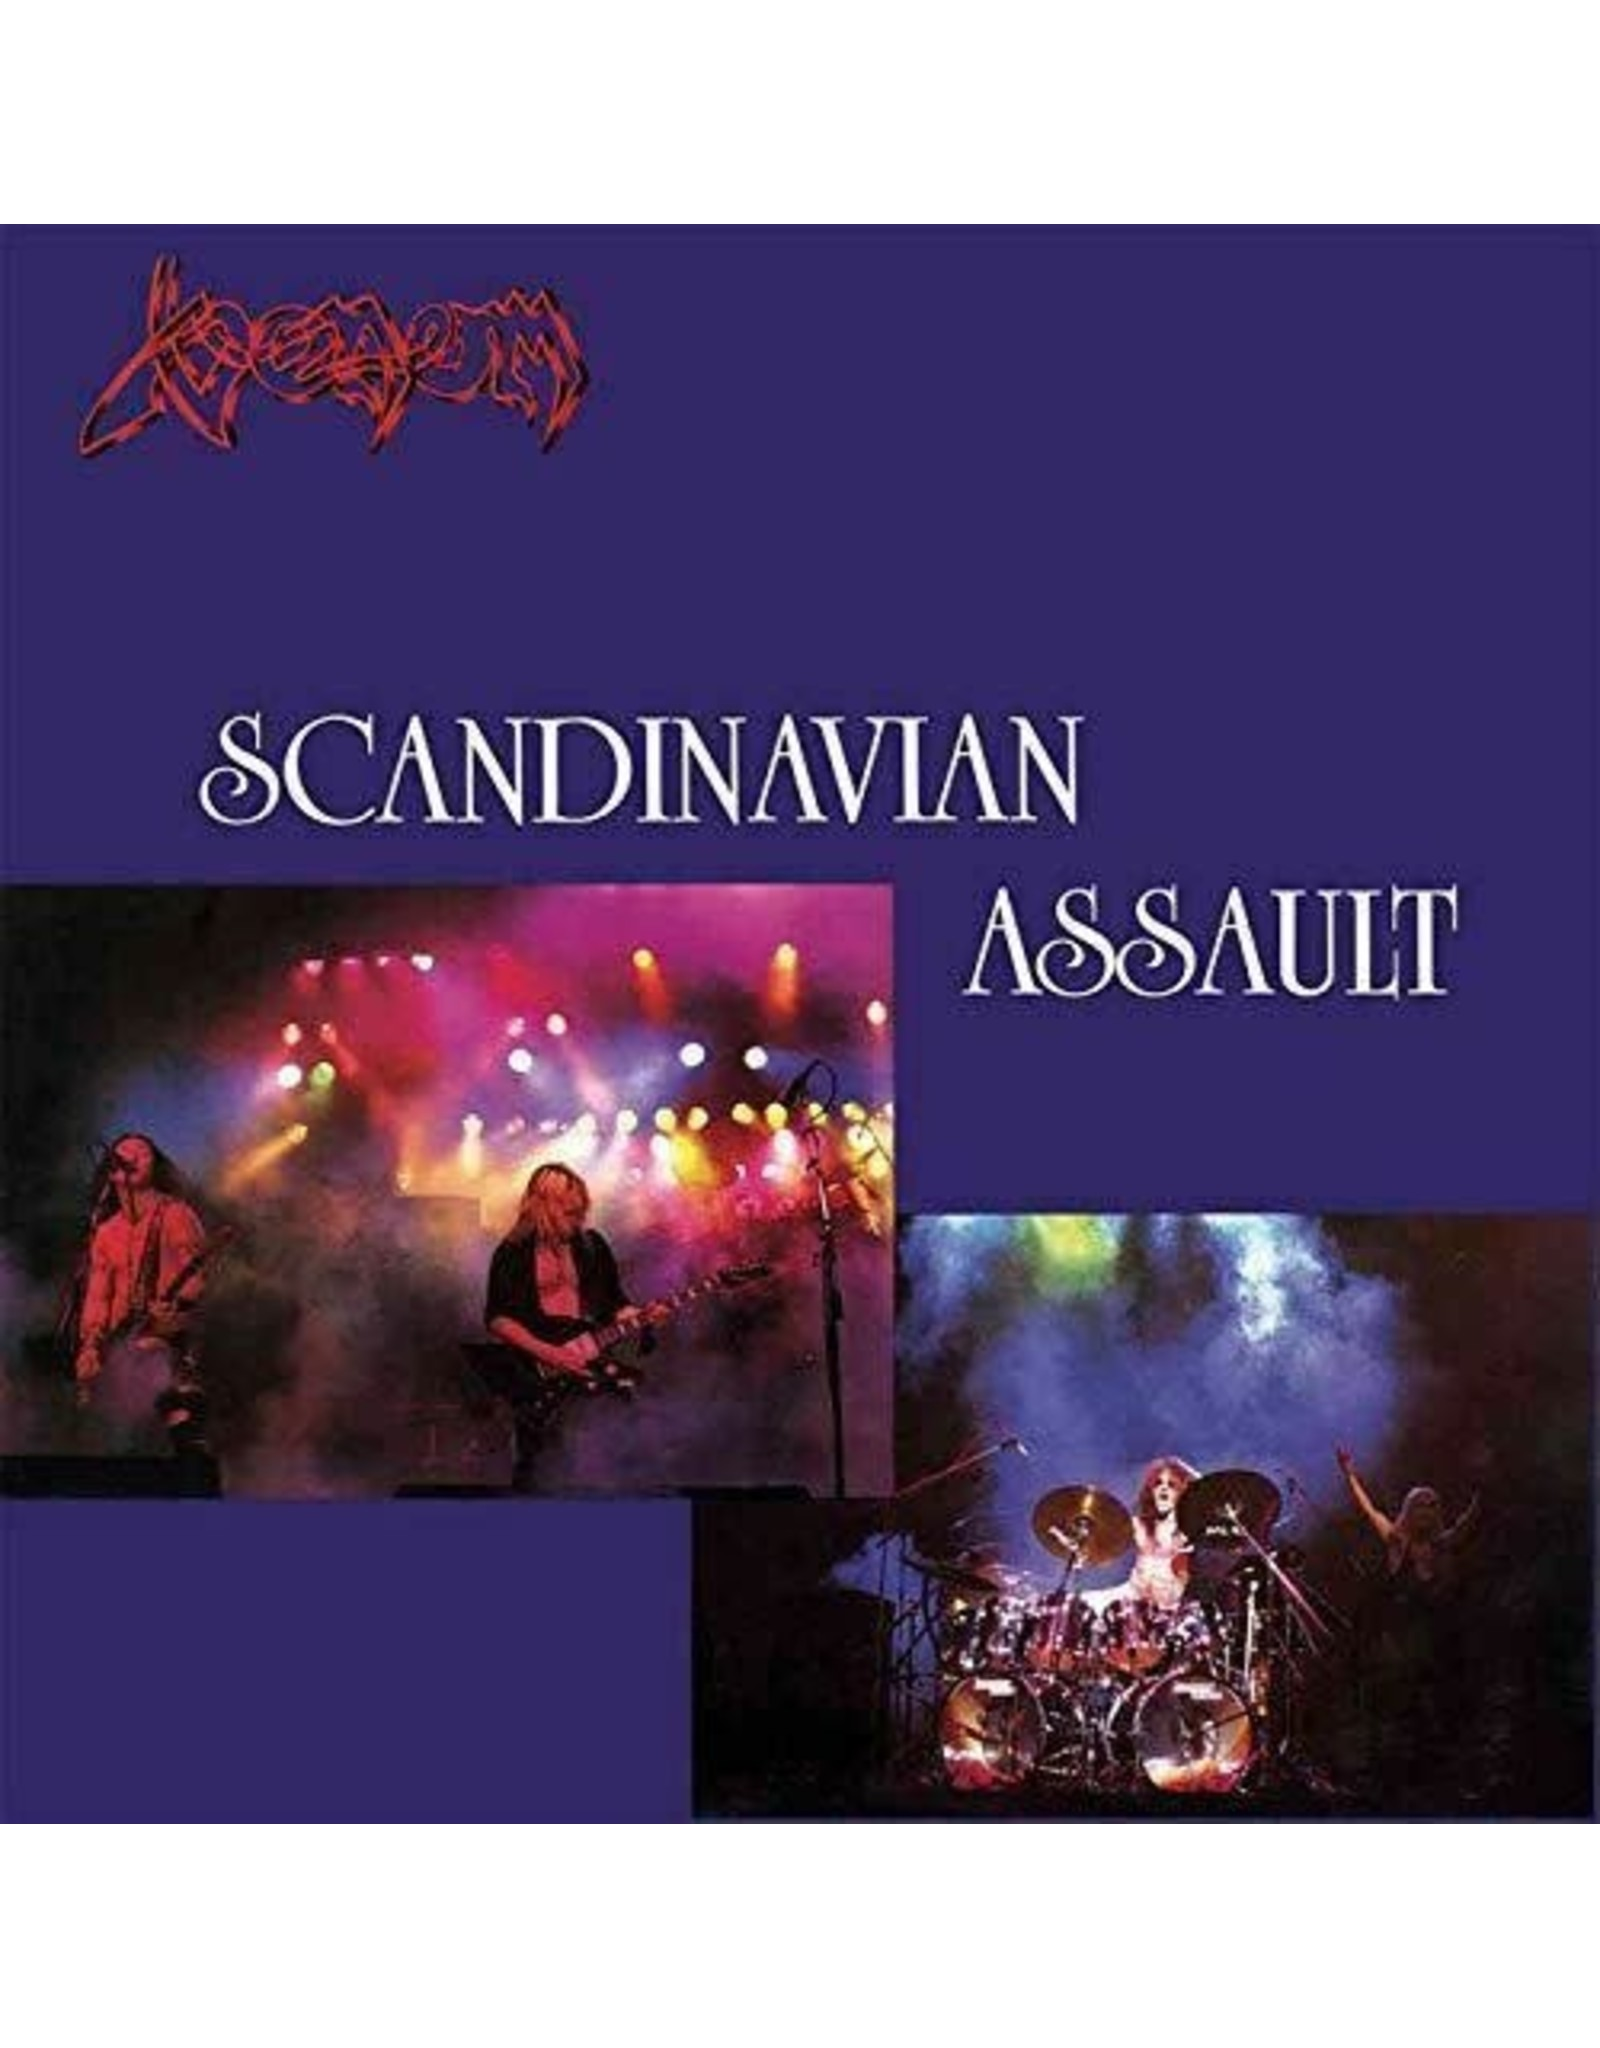 New Vinyl Venom - Scandanavian Assault EP 12""